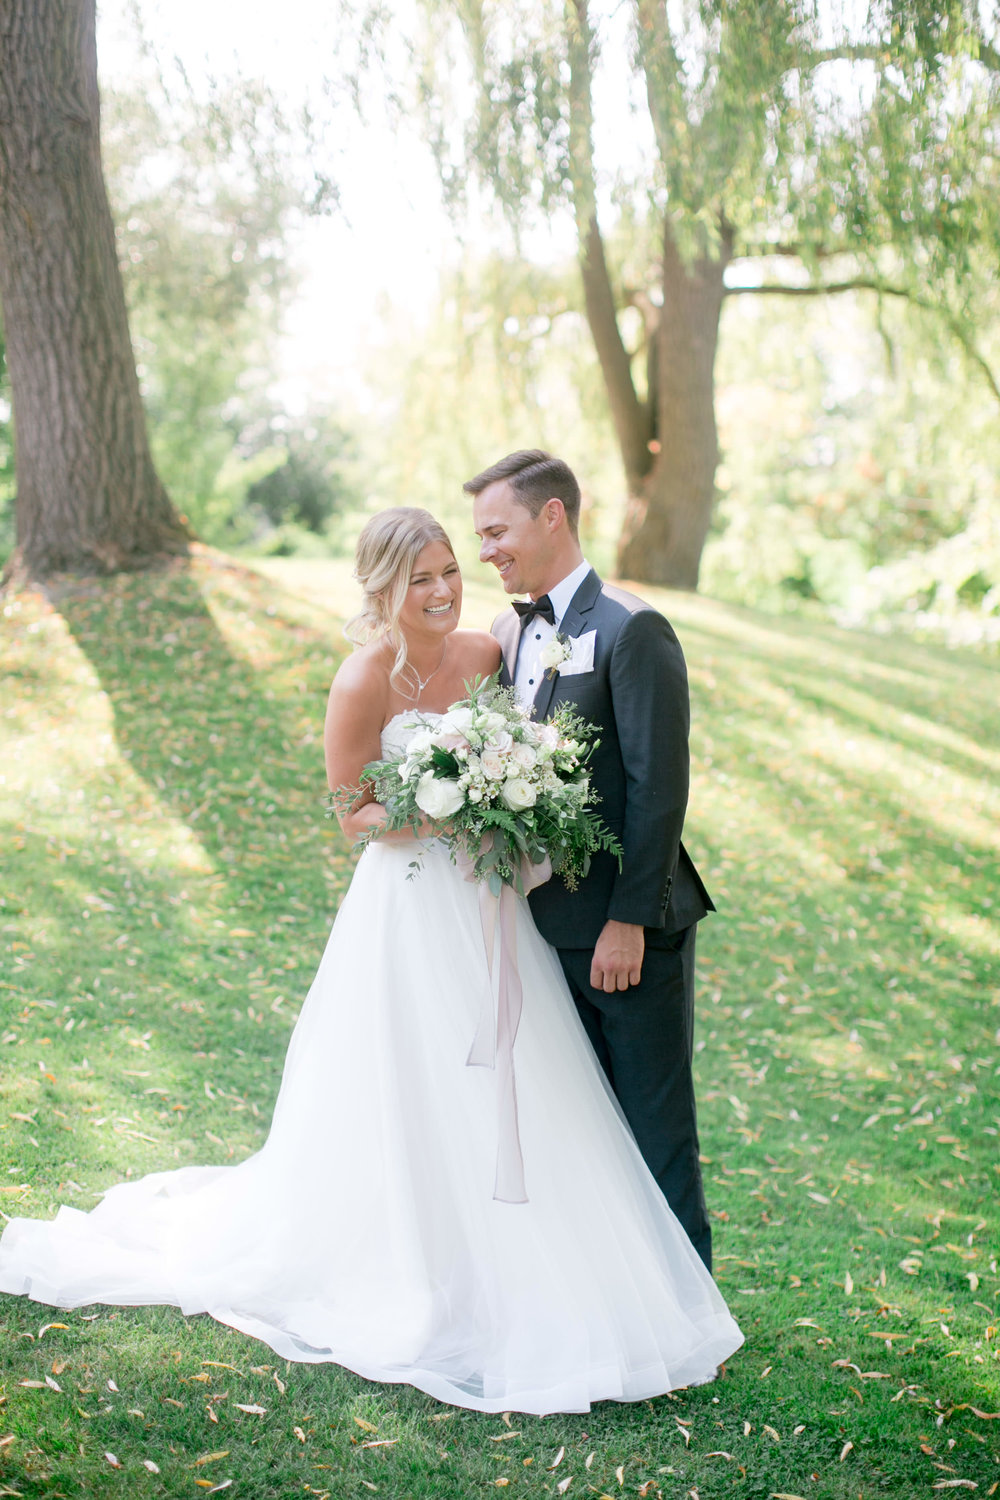 Kelsey___Daniel___High_Res_Finals___Daniel_Ricci_Weddings_173.jpg